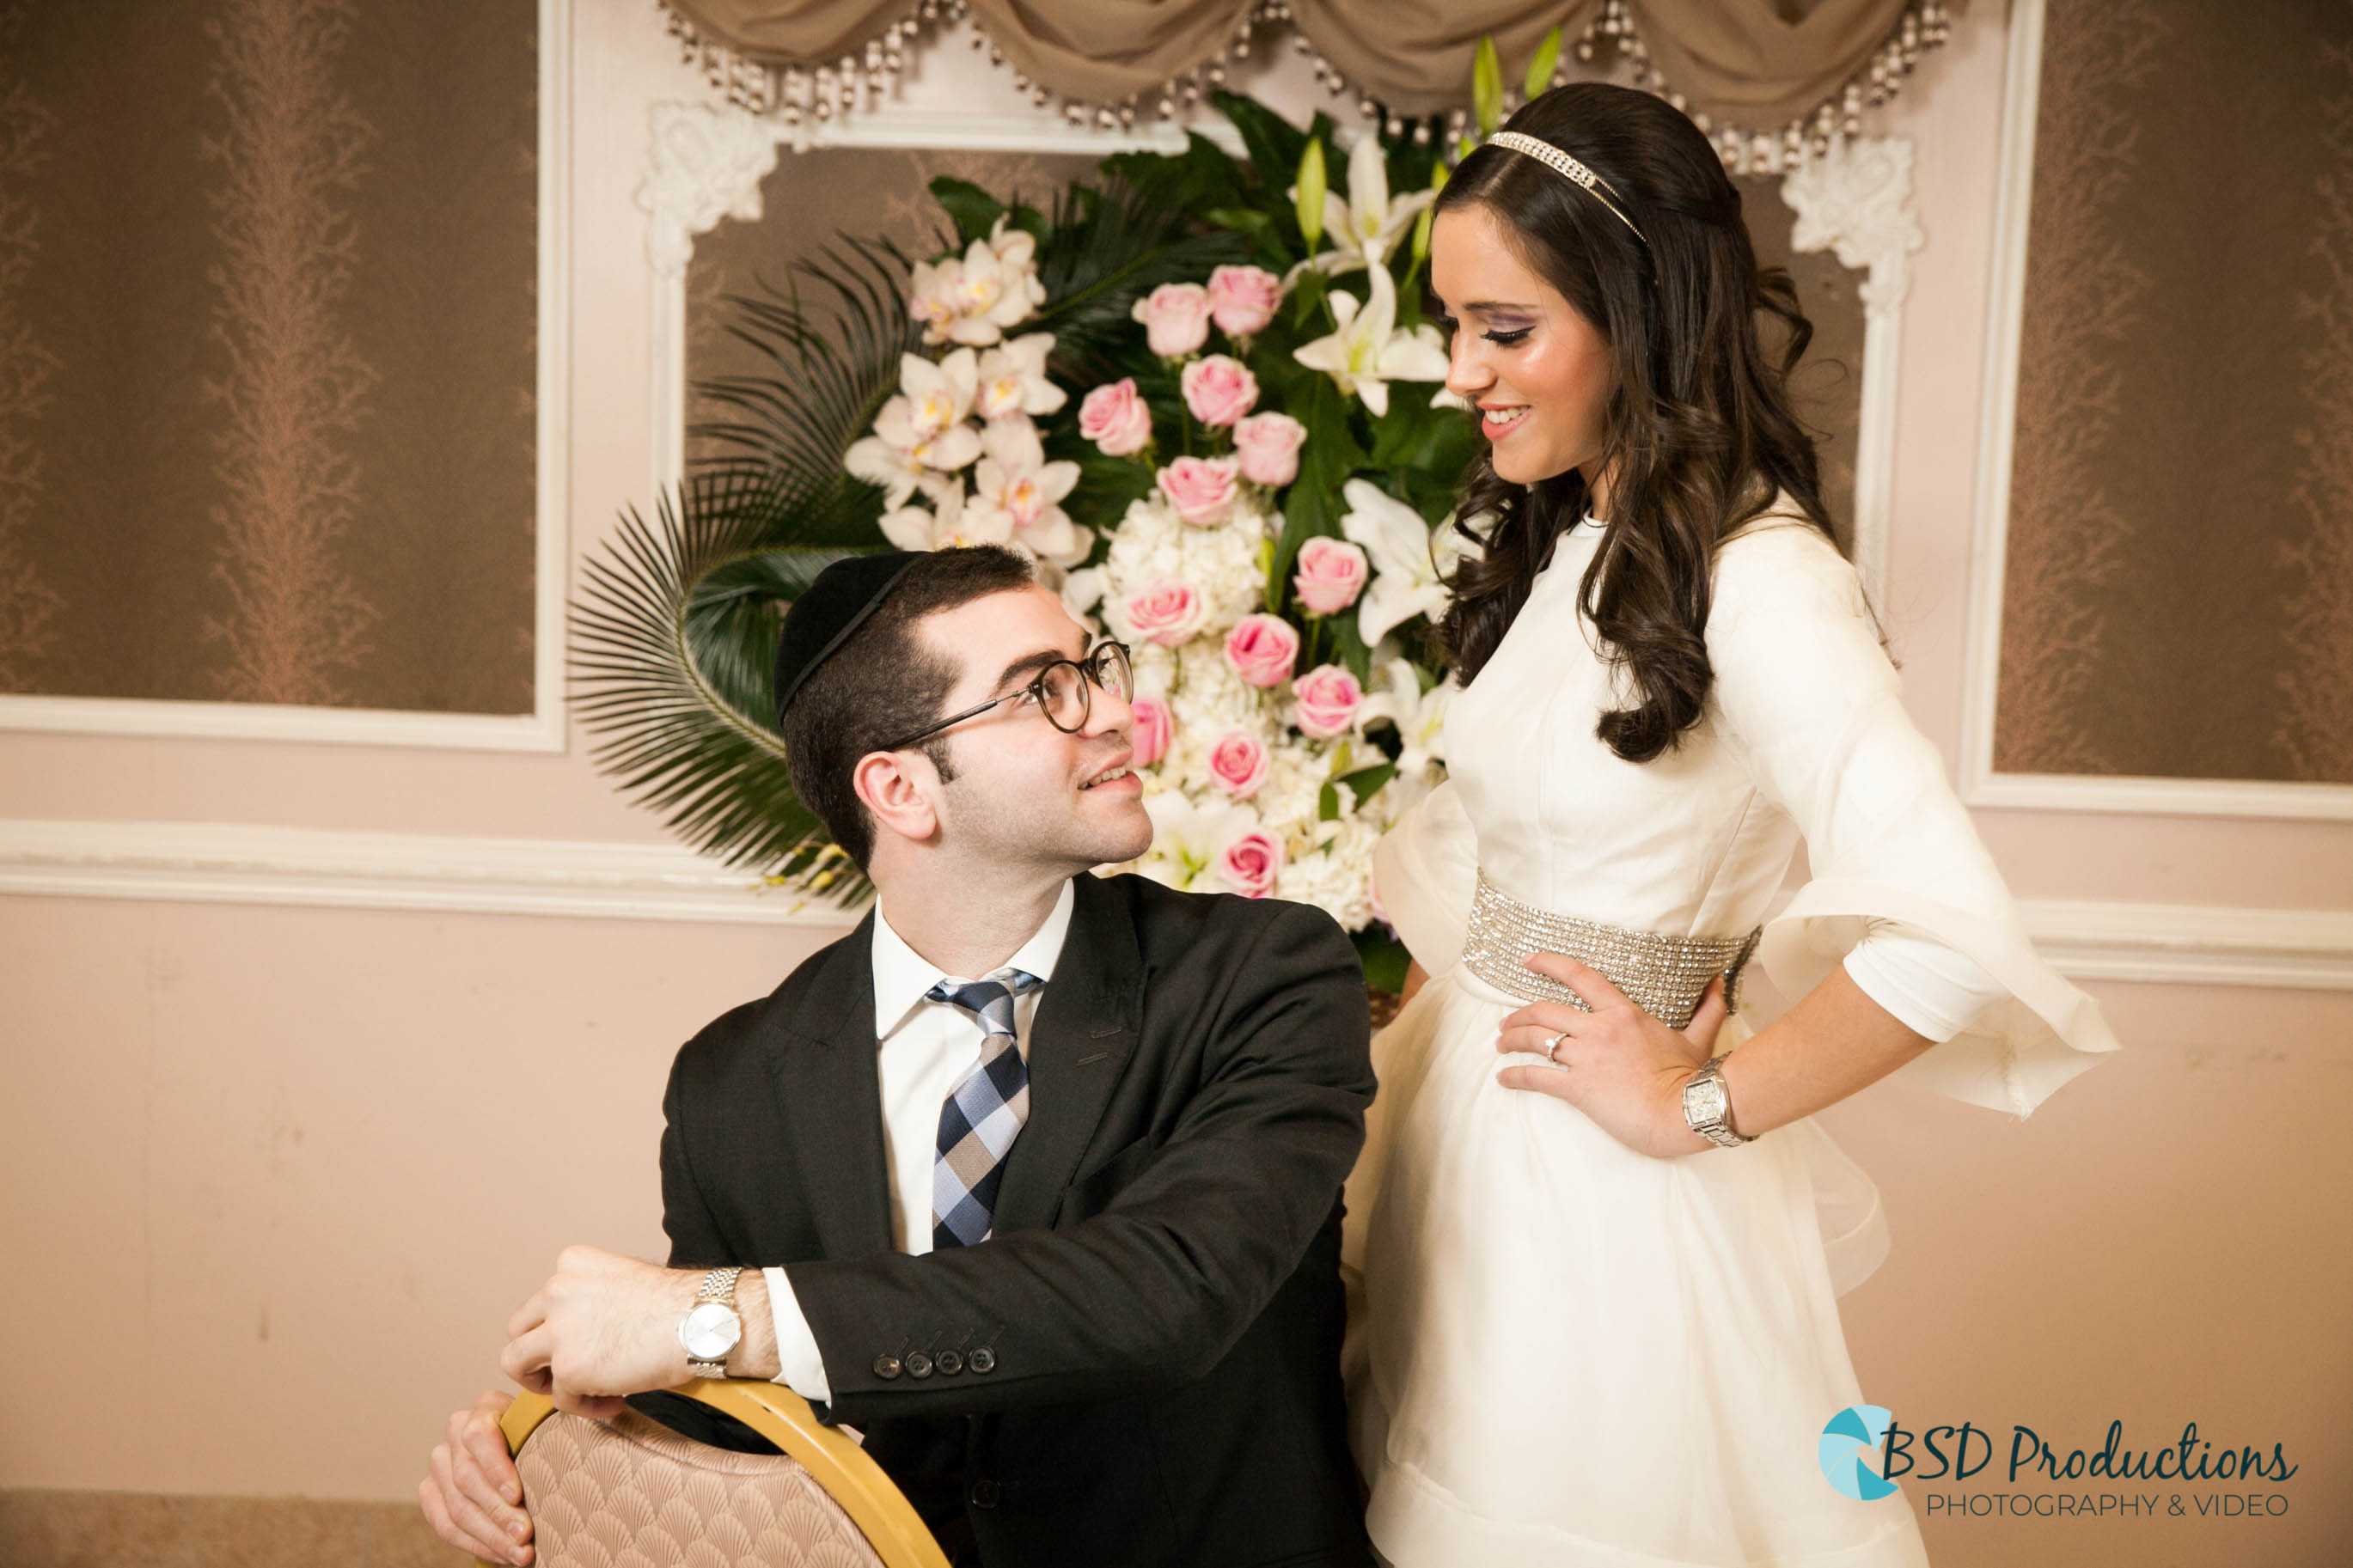 IMG_0183 Wedding – BSD Productions Photography